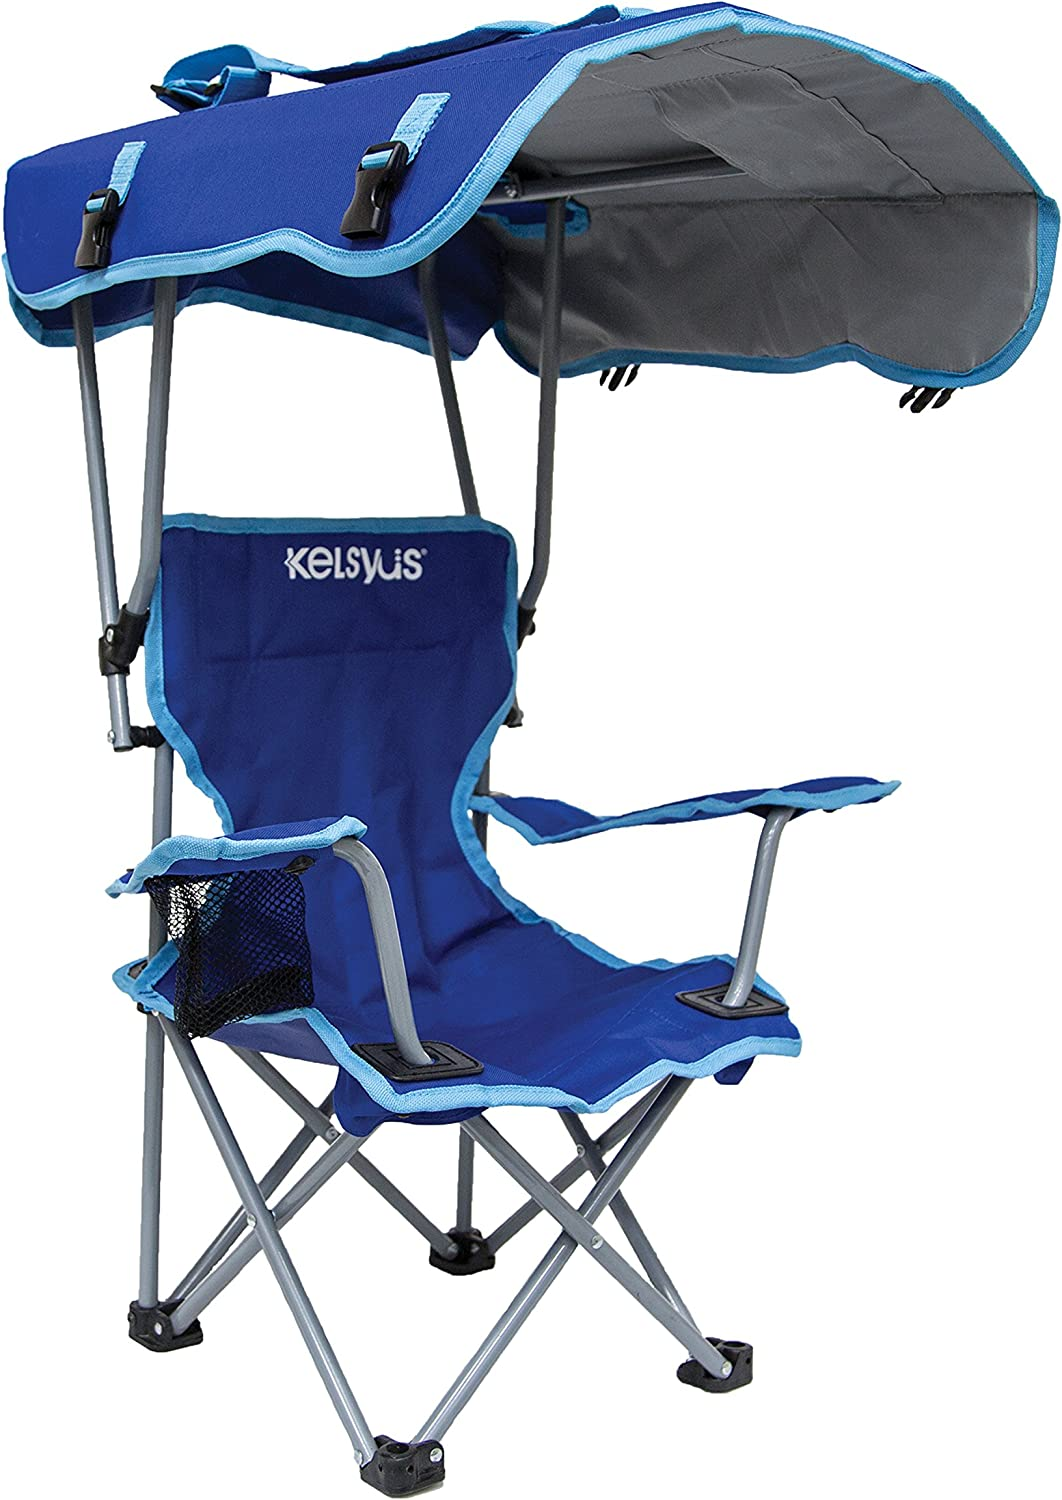 Kelsyus Kids Outdoor Canopy Chair – Foldable Children s Chair for Camping, Tailgates, and Outdoor Events